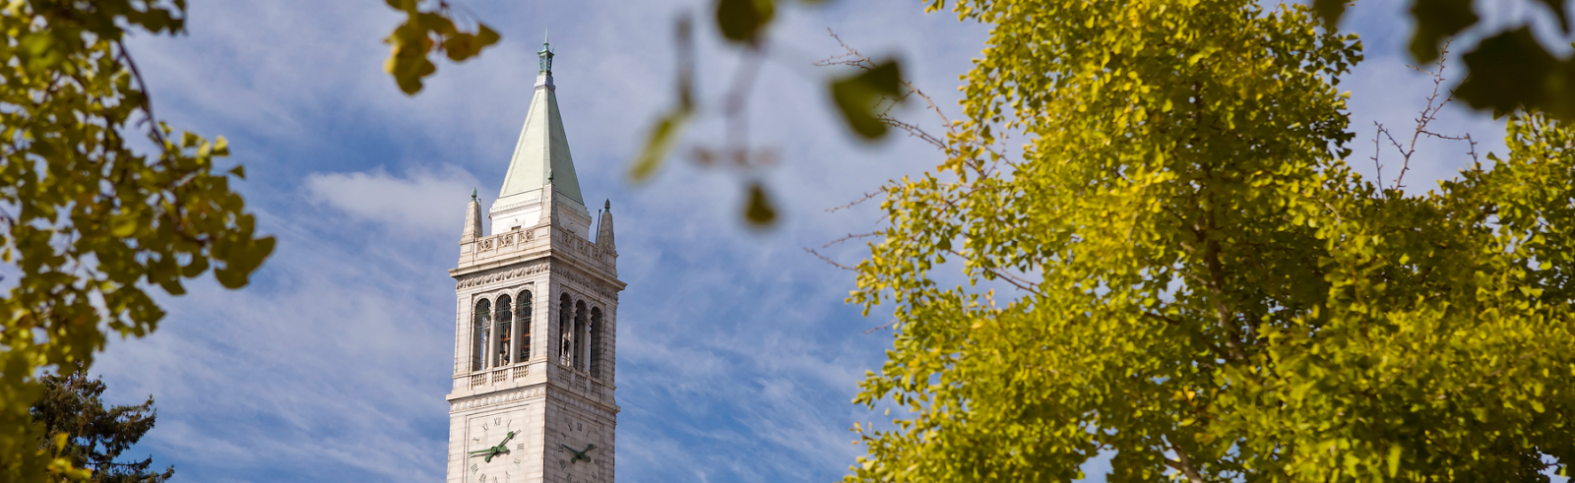 campanile and leaves